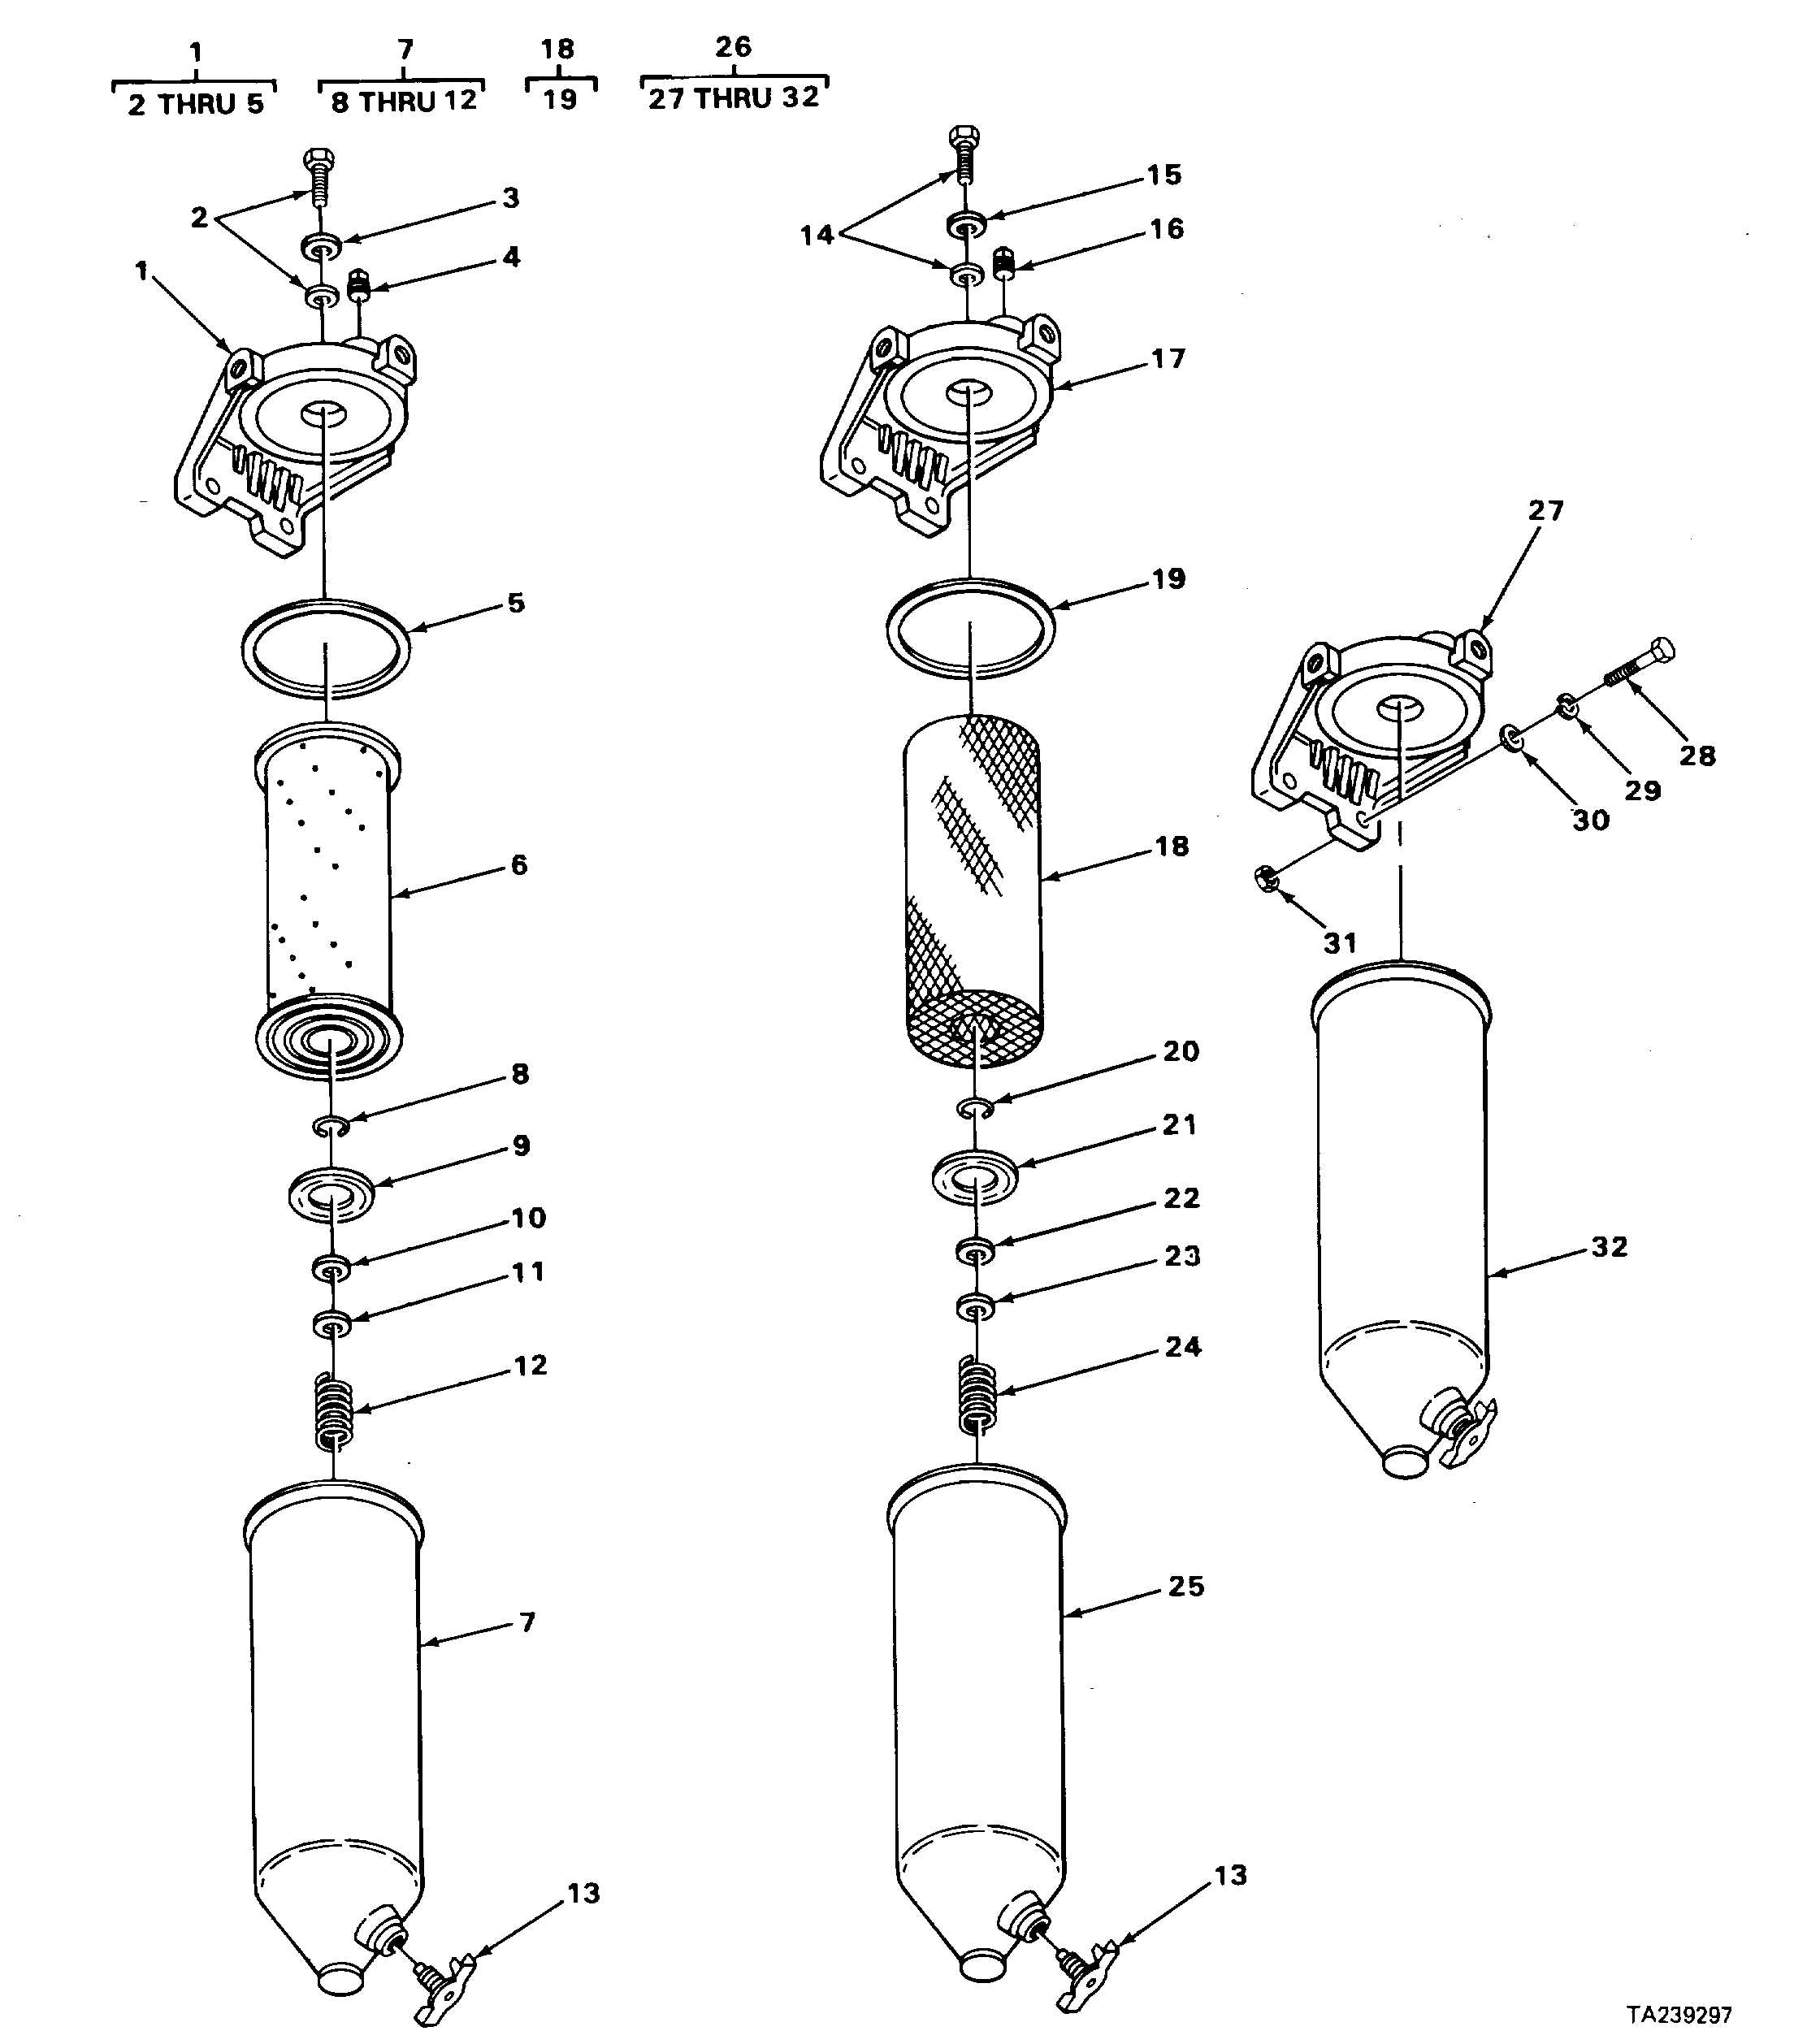 Figure 44 Fuel Filters And Strainer